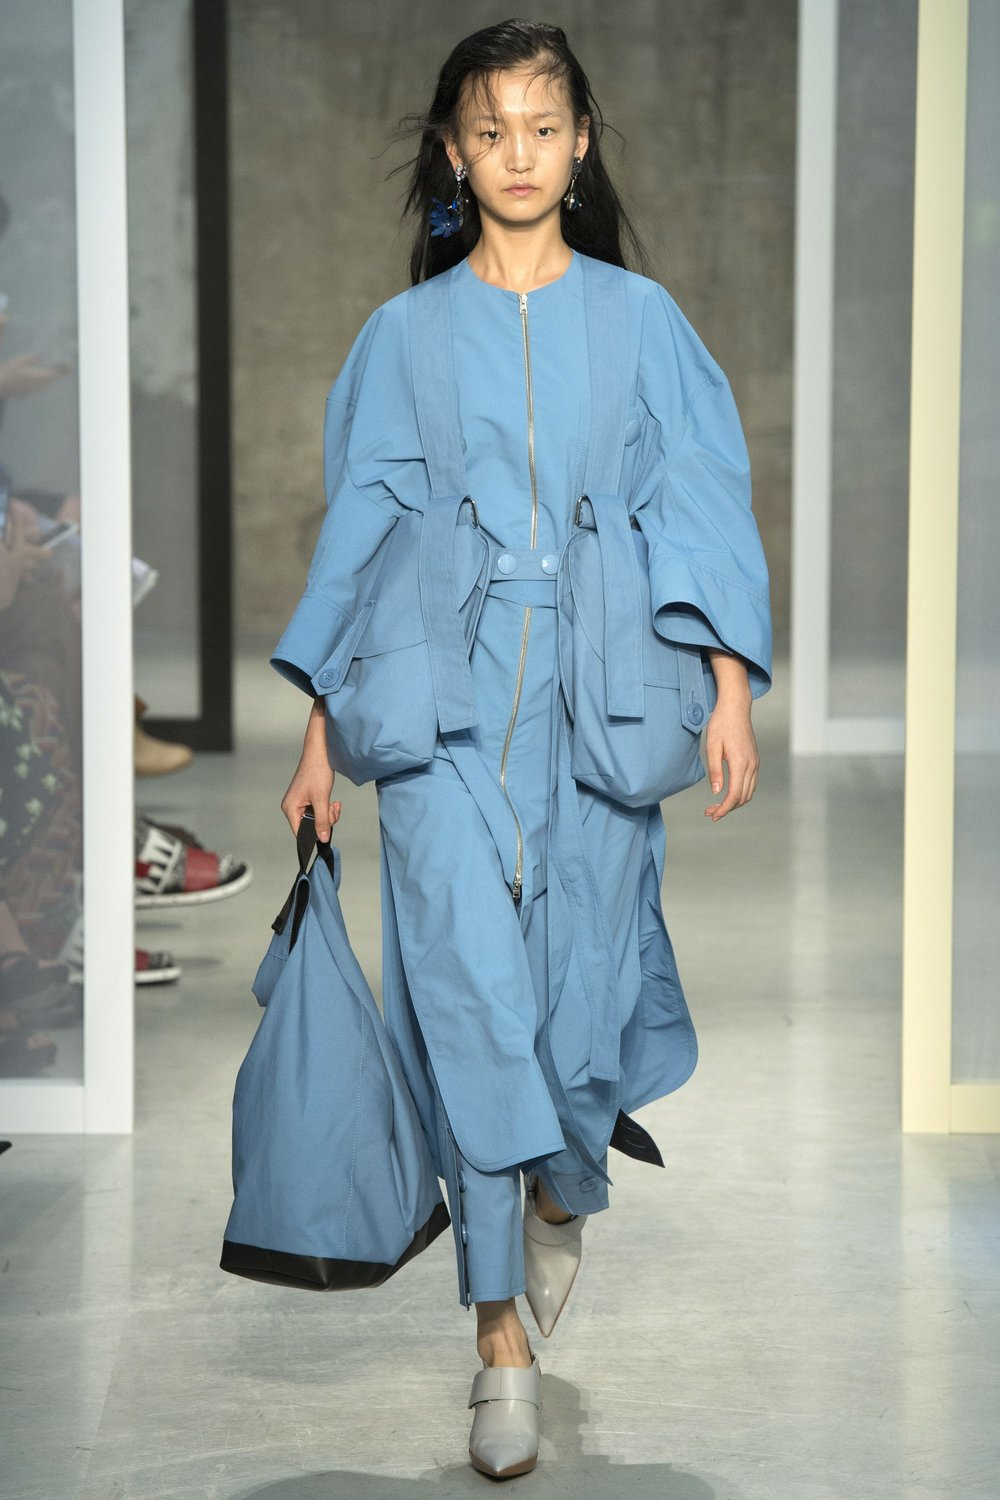 dbca7a18340e ... being behind only Rei Kawakubo and Miuccia Prada as fashion's leader of  abstract female fashion design. Certainly, all three women approach fashion  as a ...